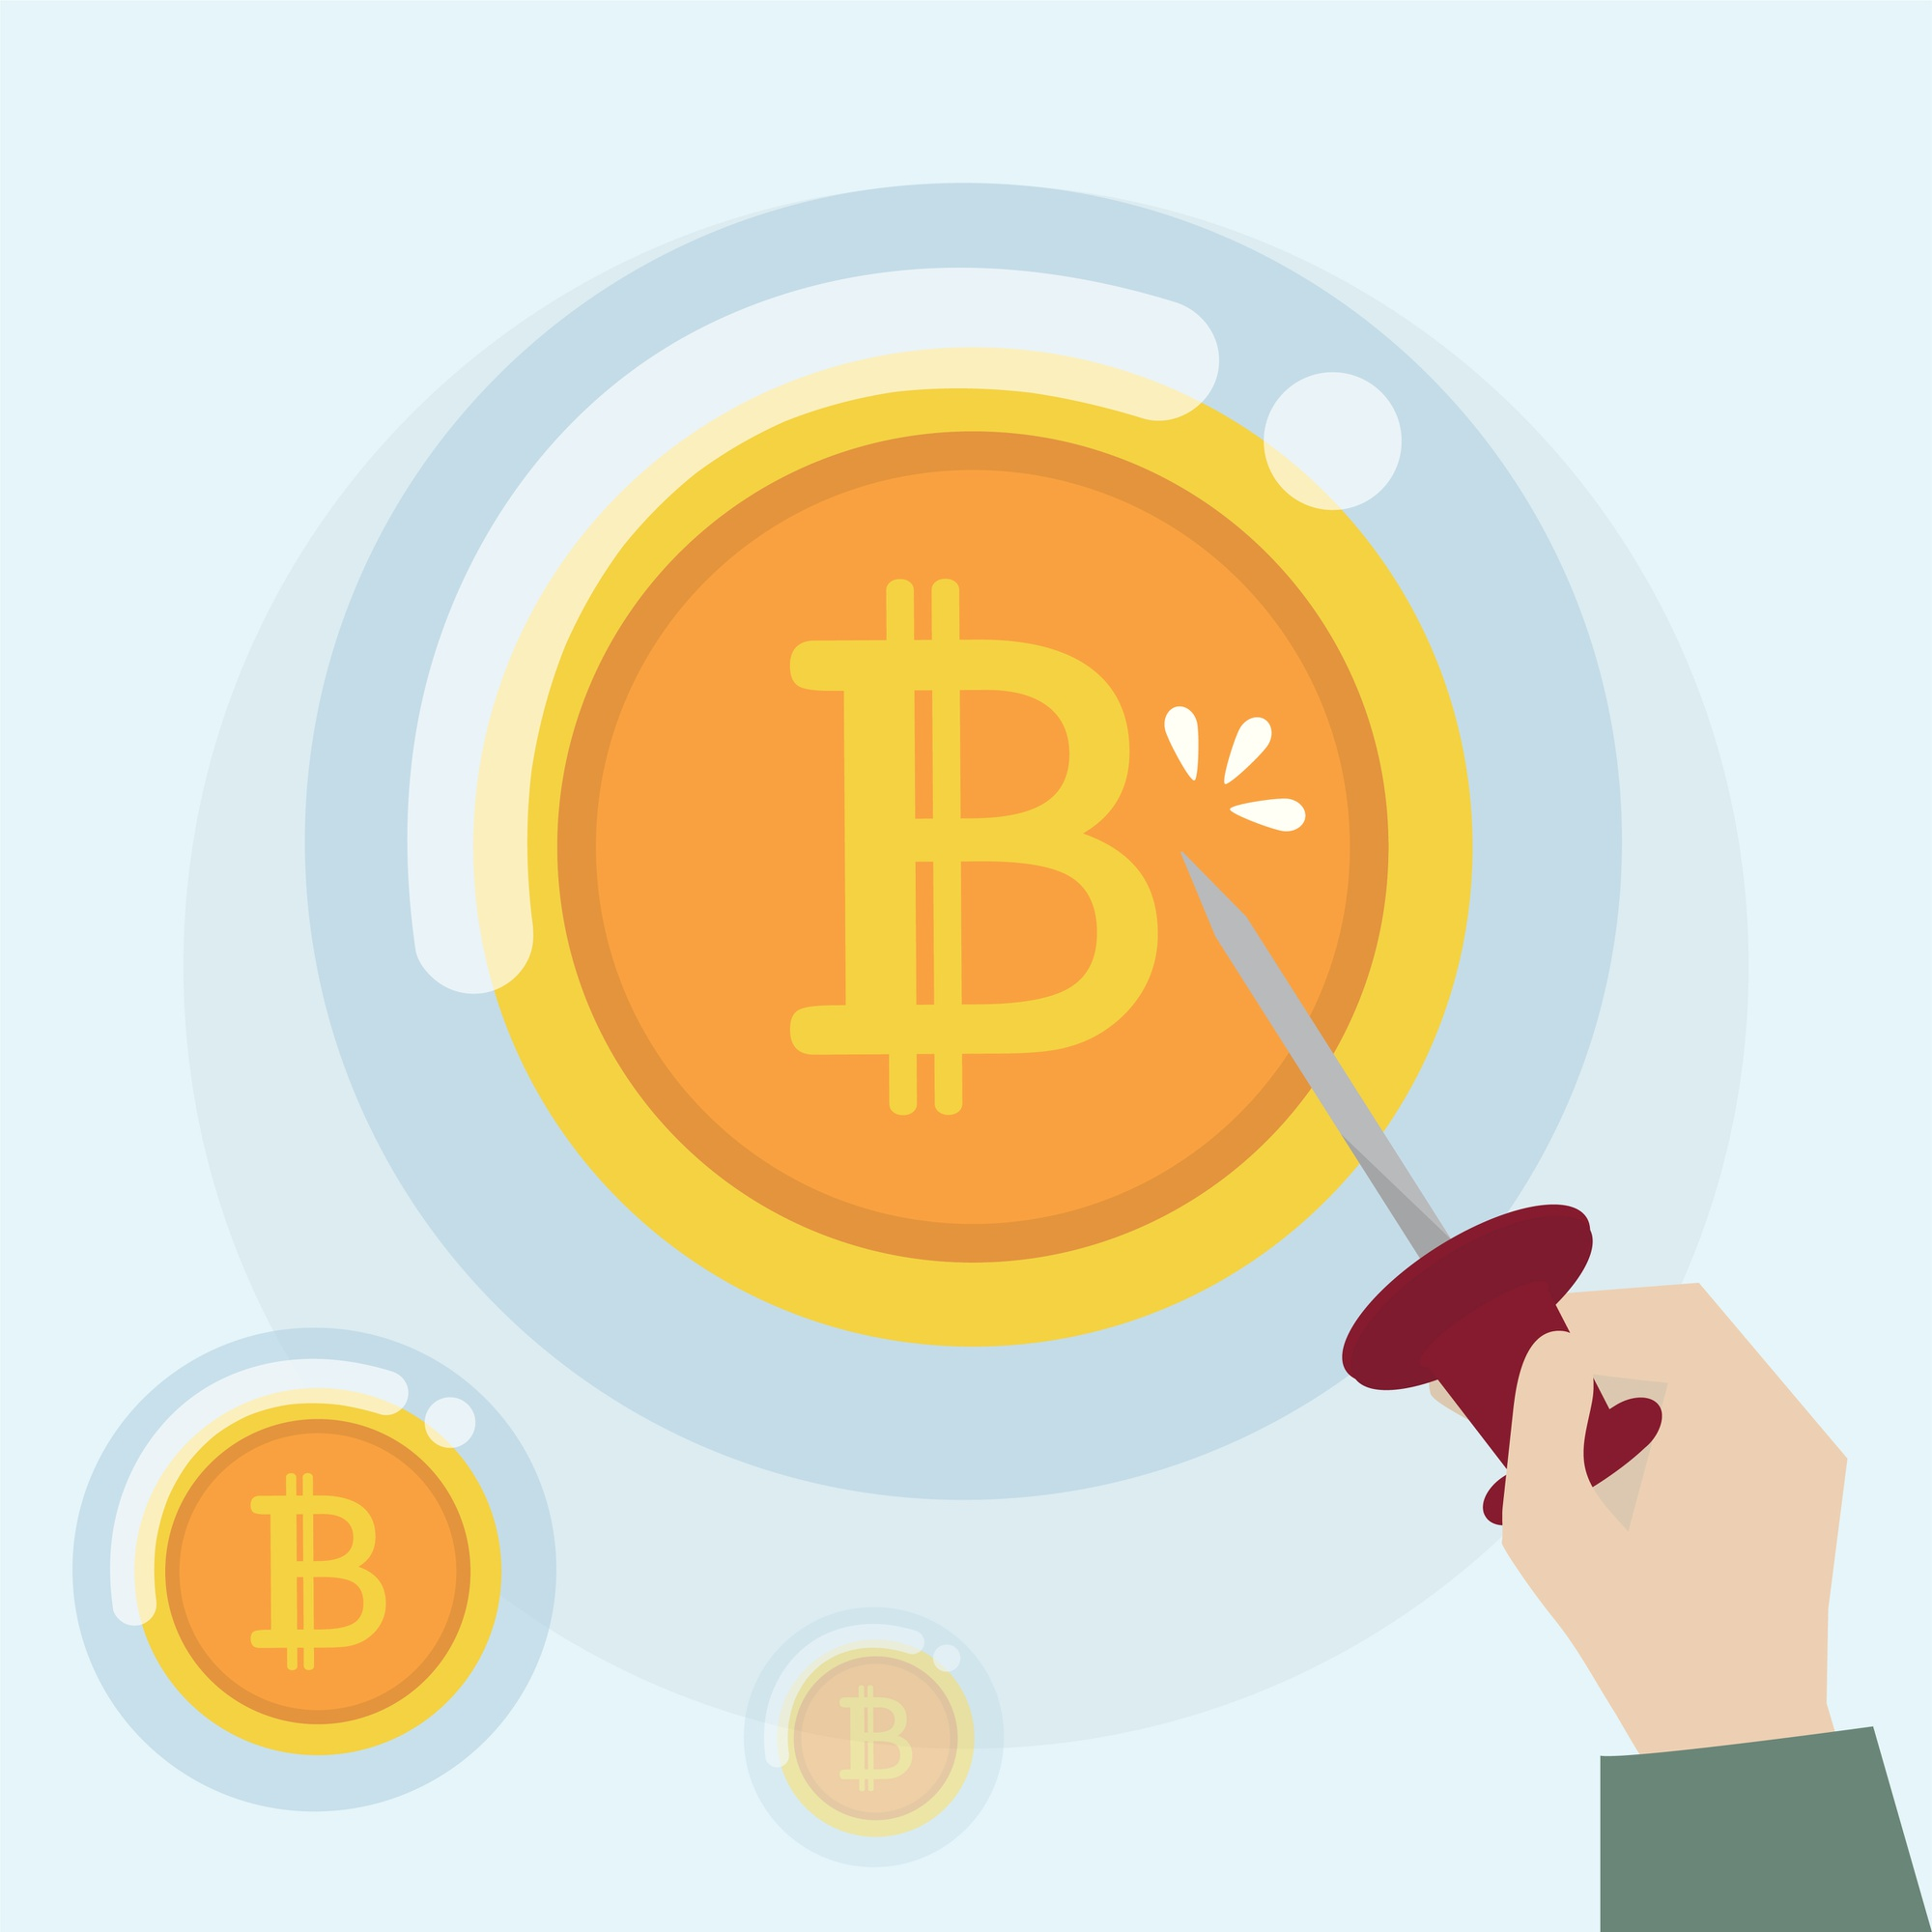 Bitcoin cryptocurrency in a bubble state